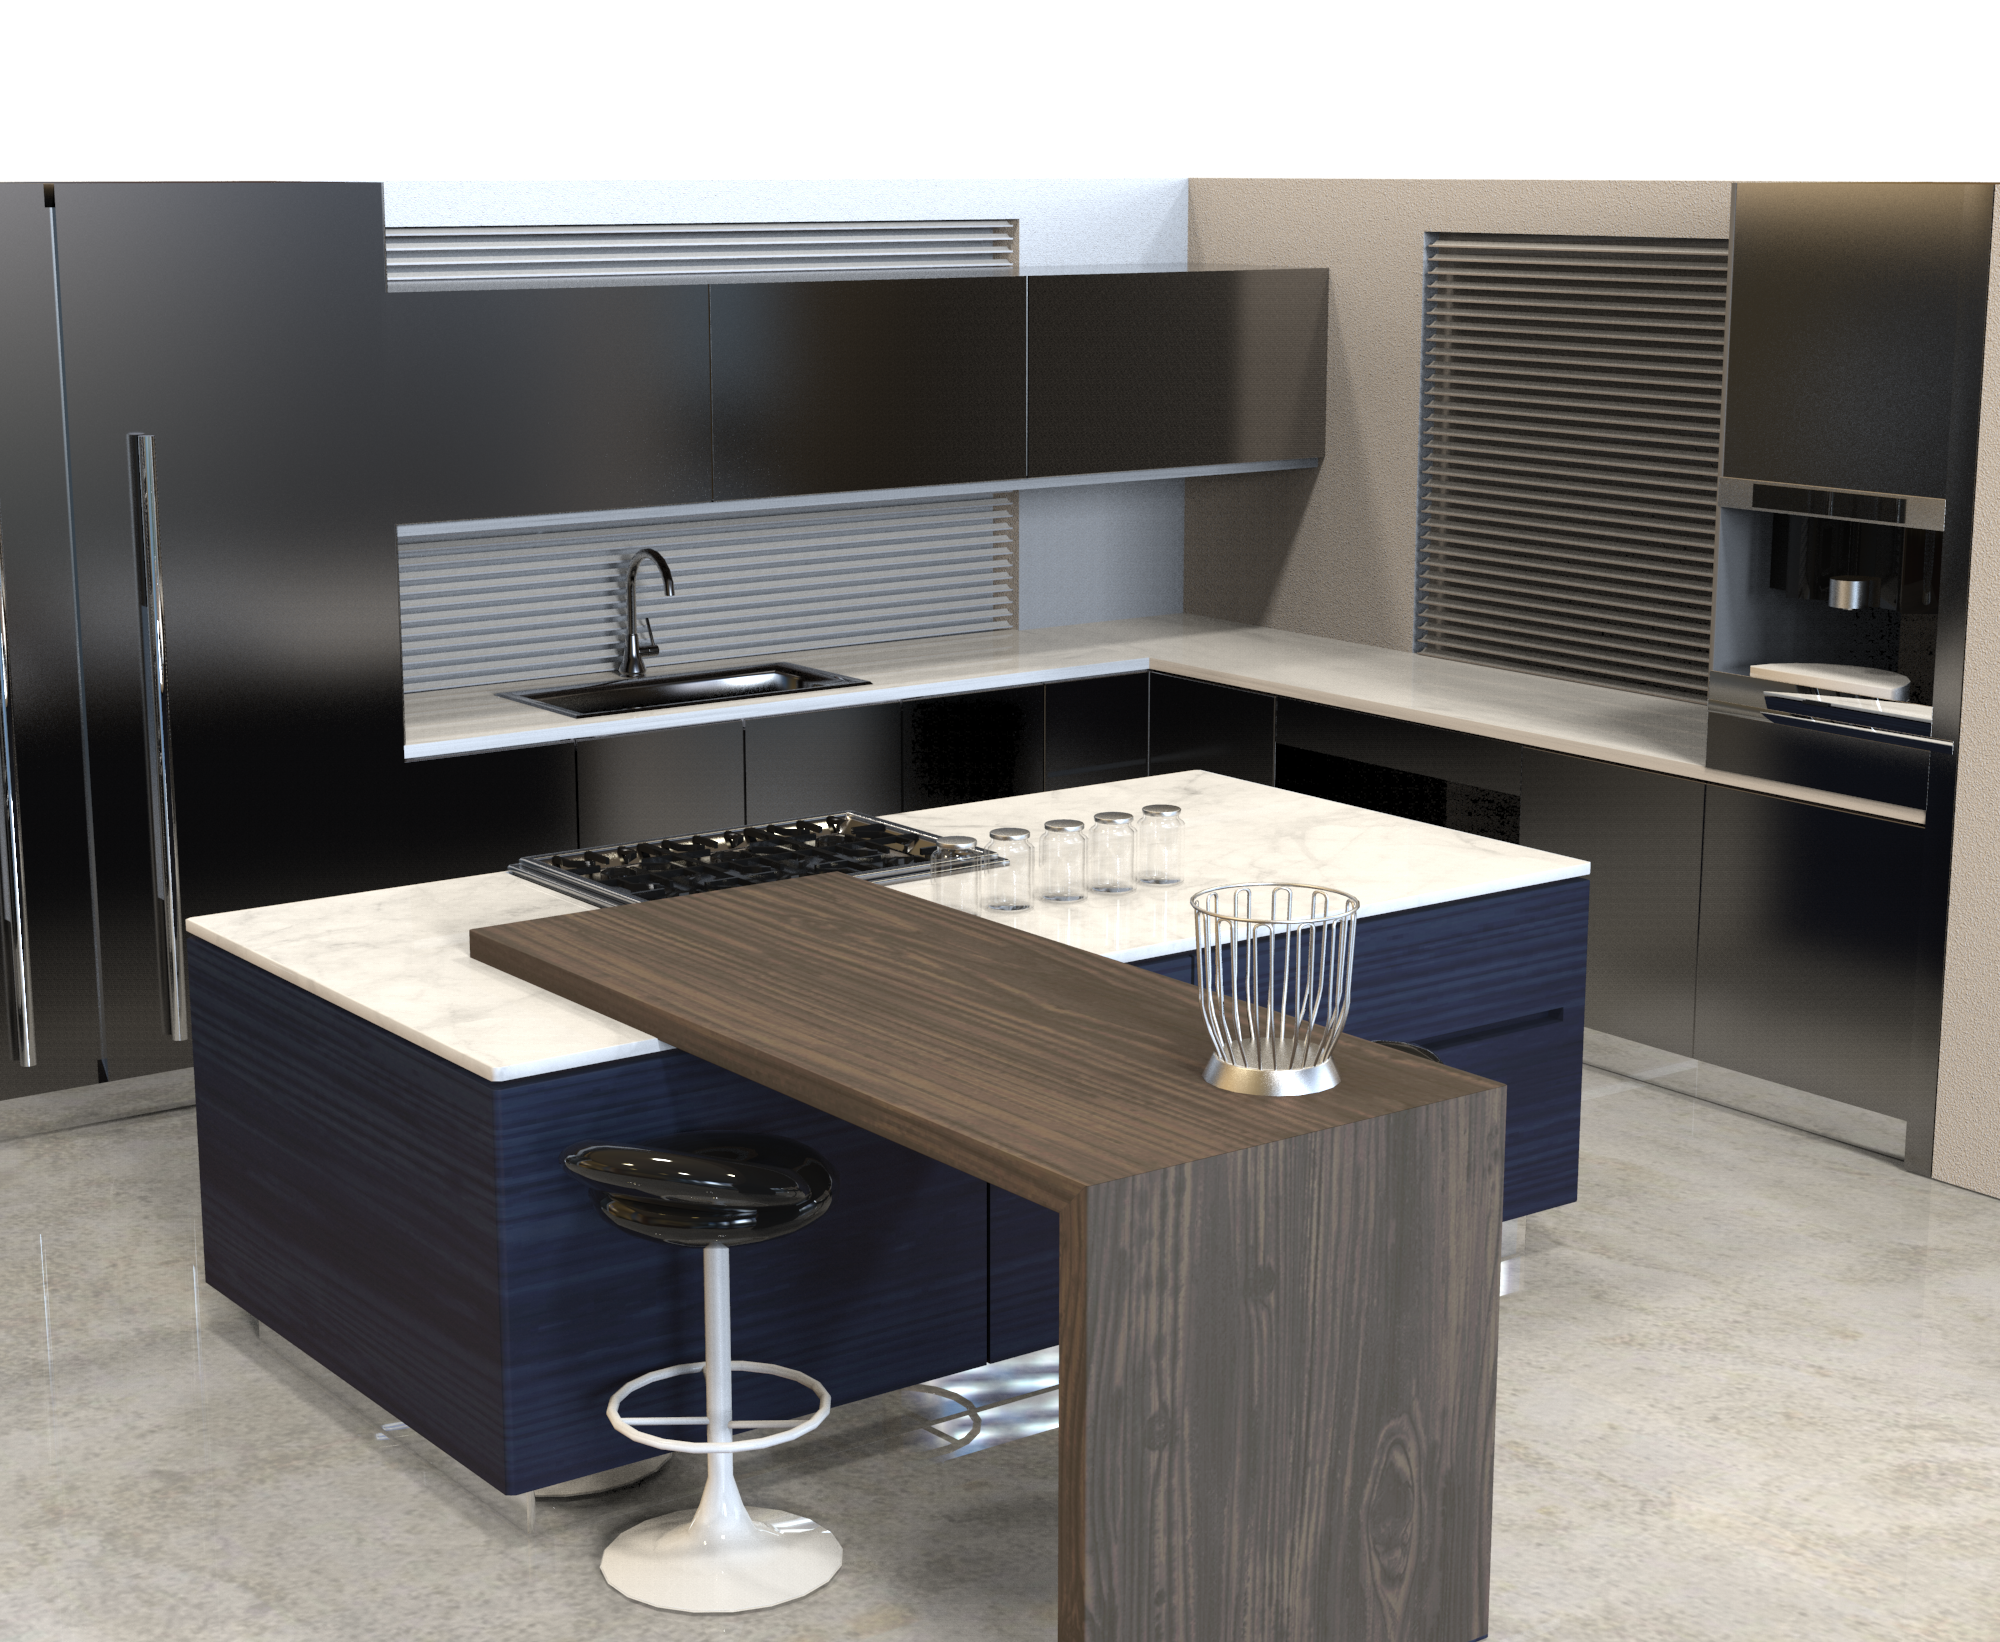 InteriorKitchen.319.png